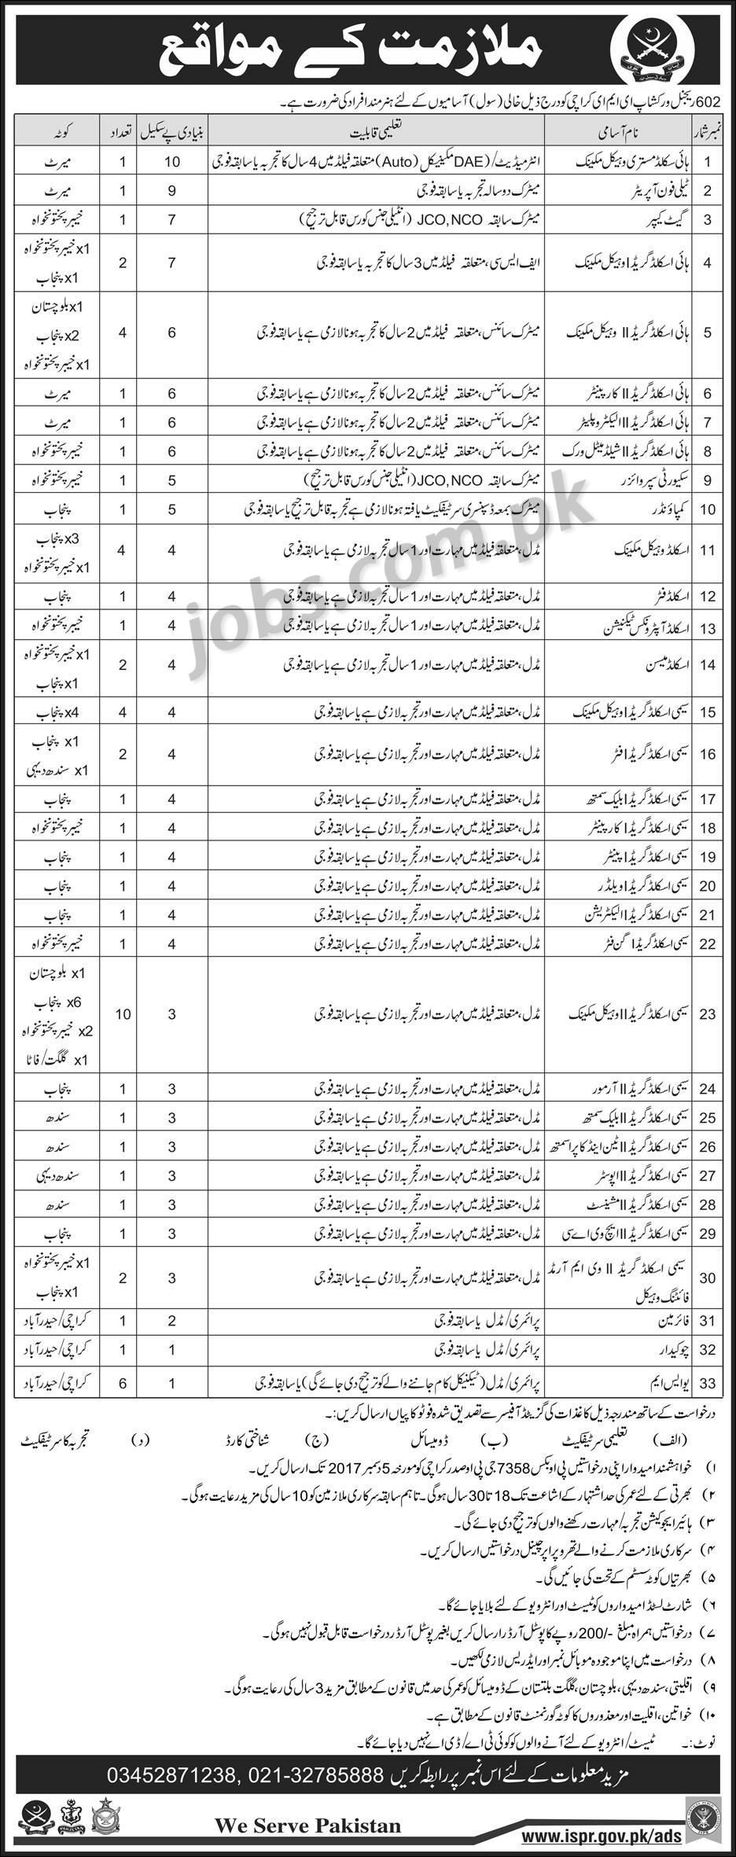 Pak Army Jobs 2018 for Skilled, Technical, Telephone Operator & Other Support Staff at 602 Regional Workshop EME Karachi